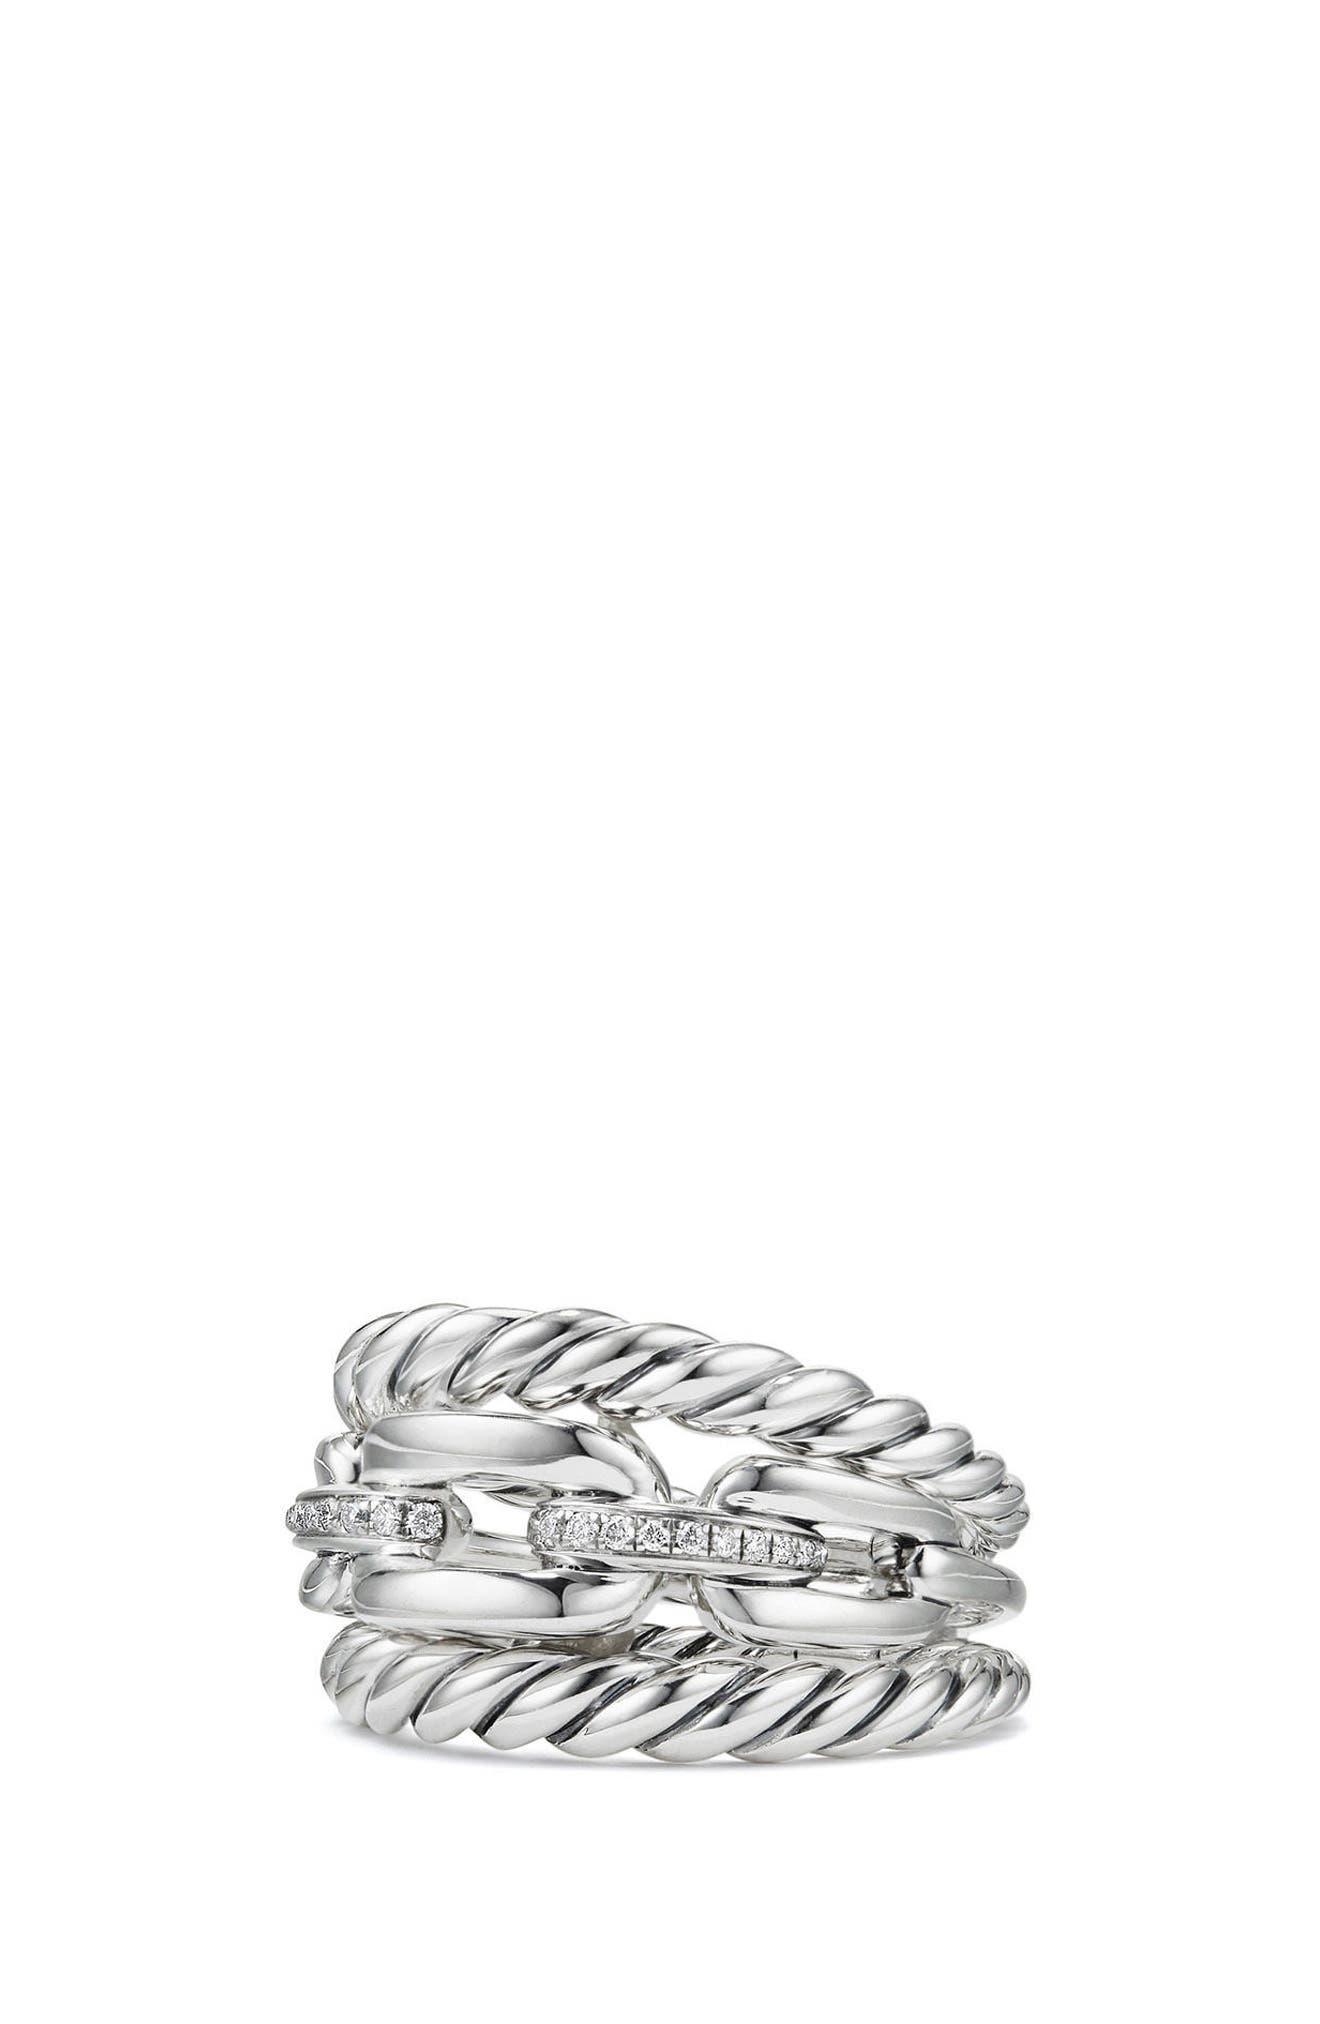 Wellesley Three-Row Ring with Diamonds,                             Main thumbnail 1, color,                             SILVER